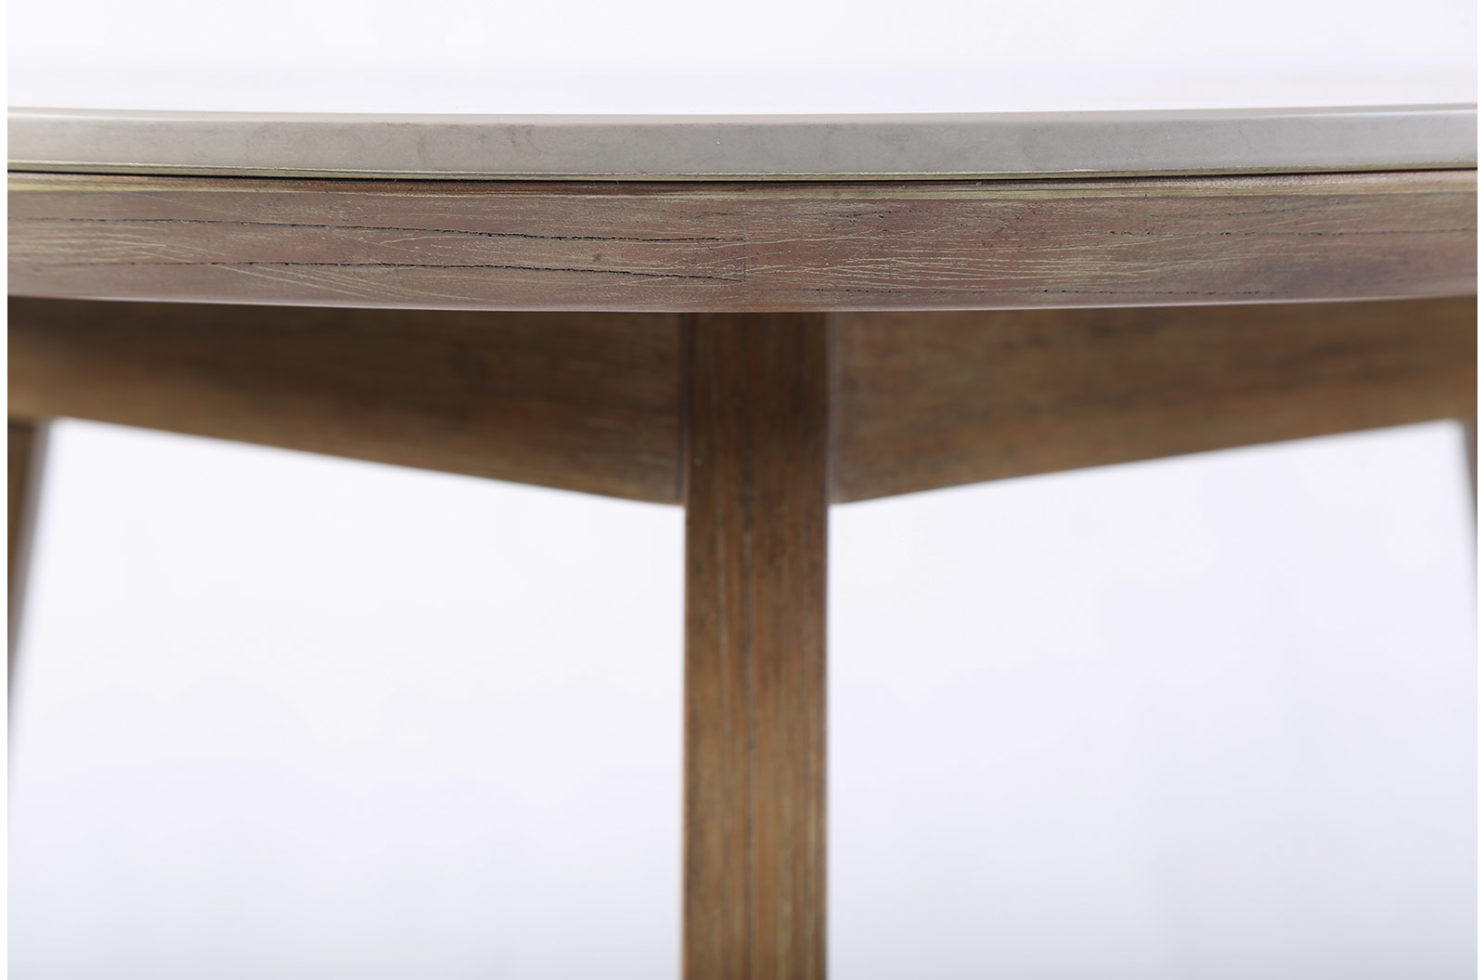 pioneer bistro table 504FT401P2 E dtl2